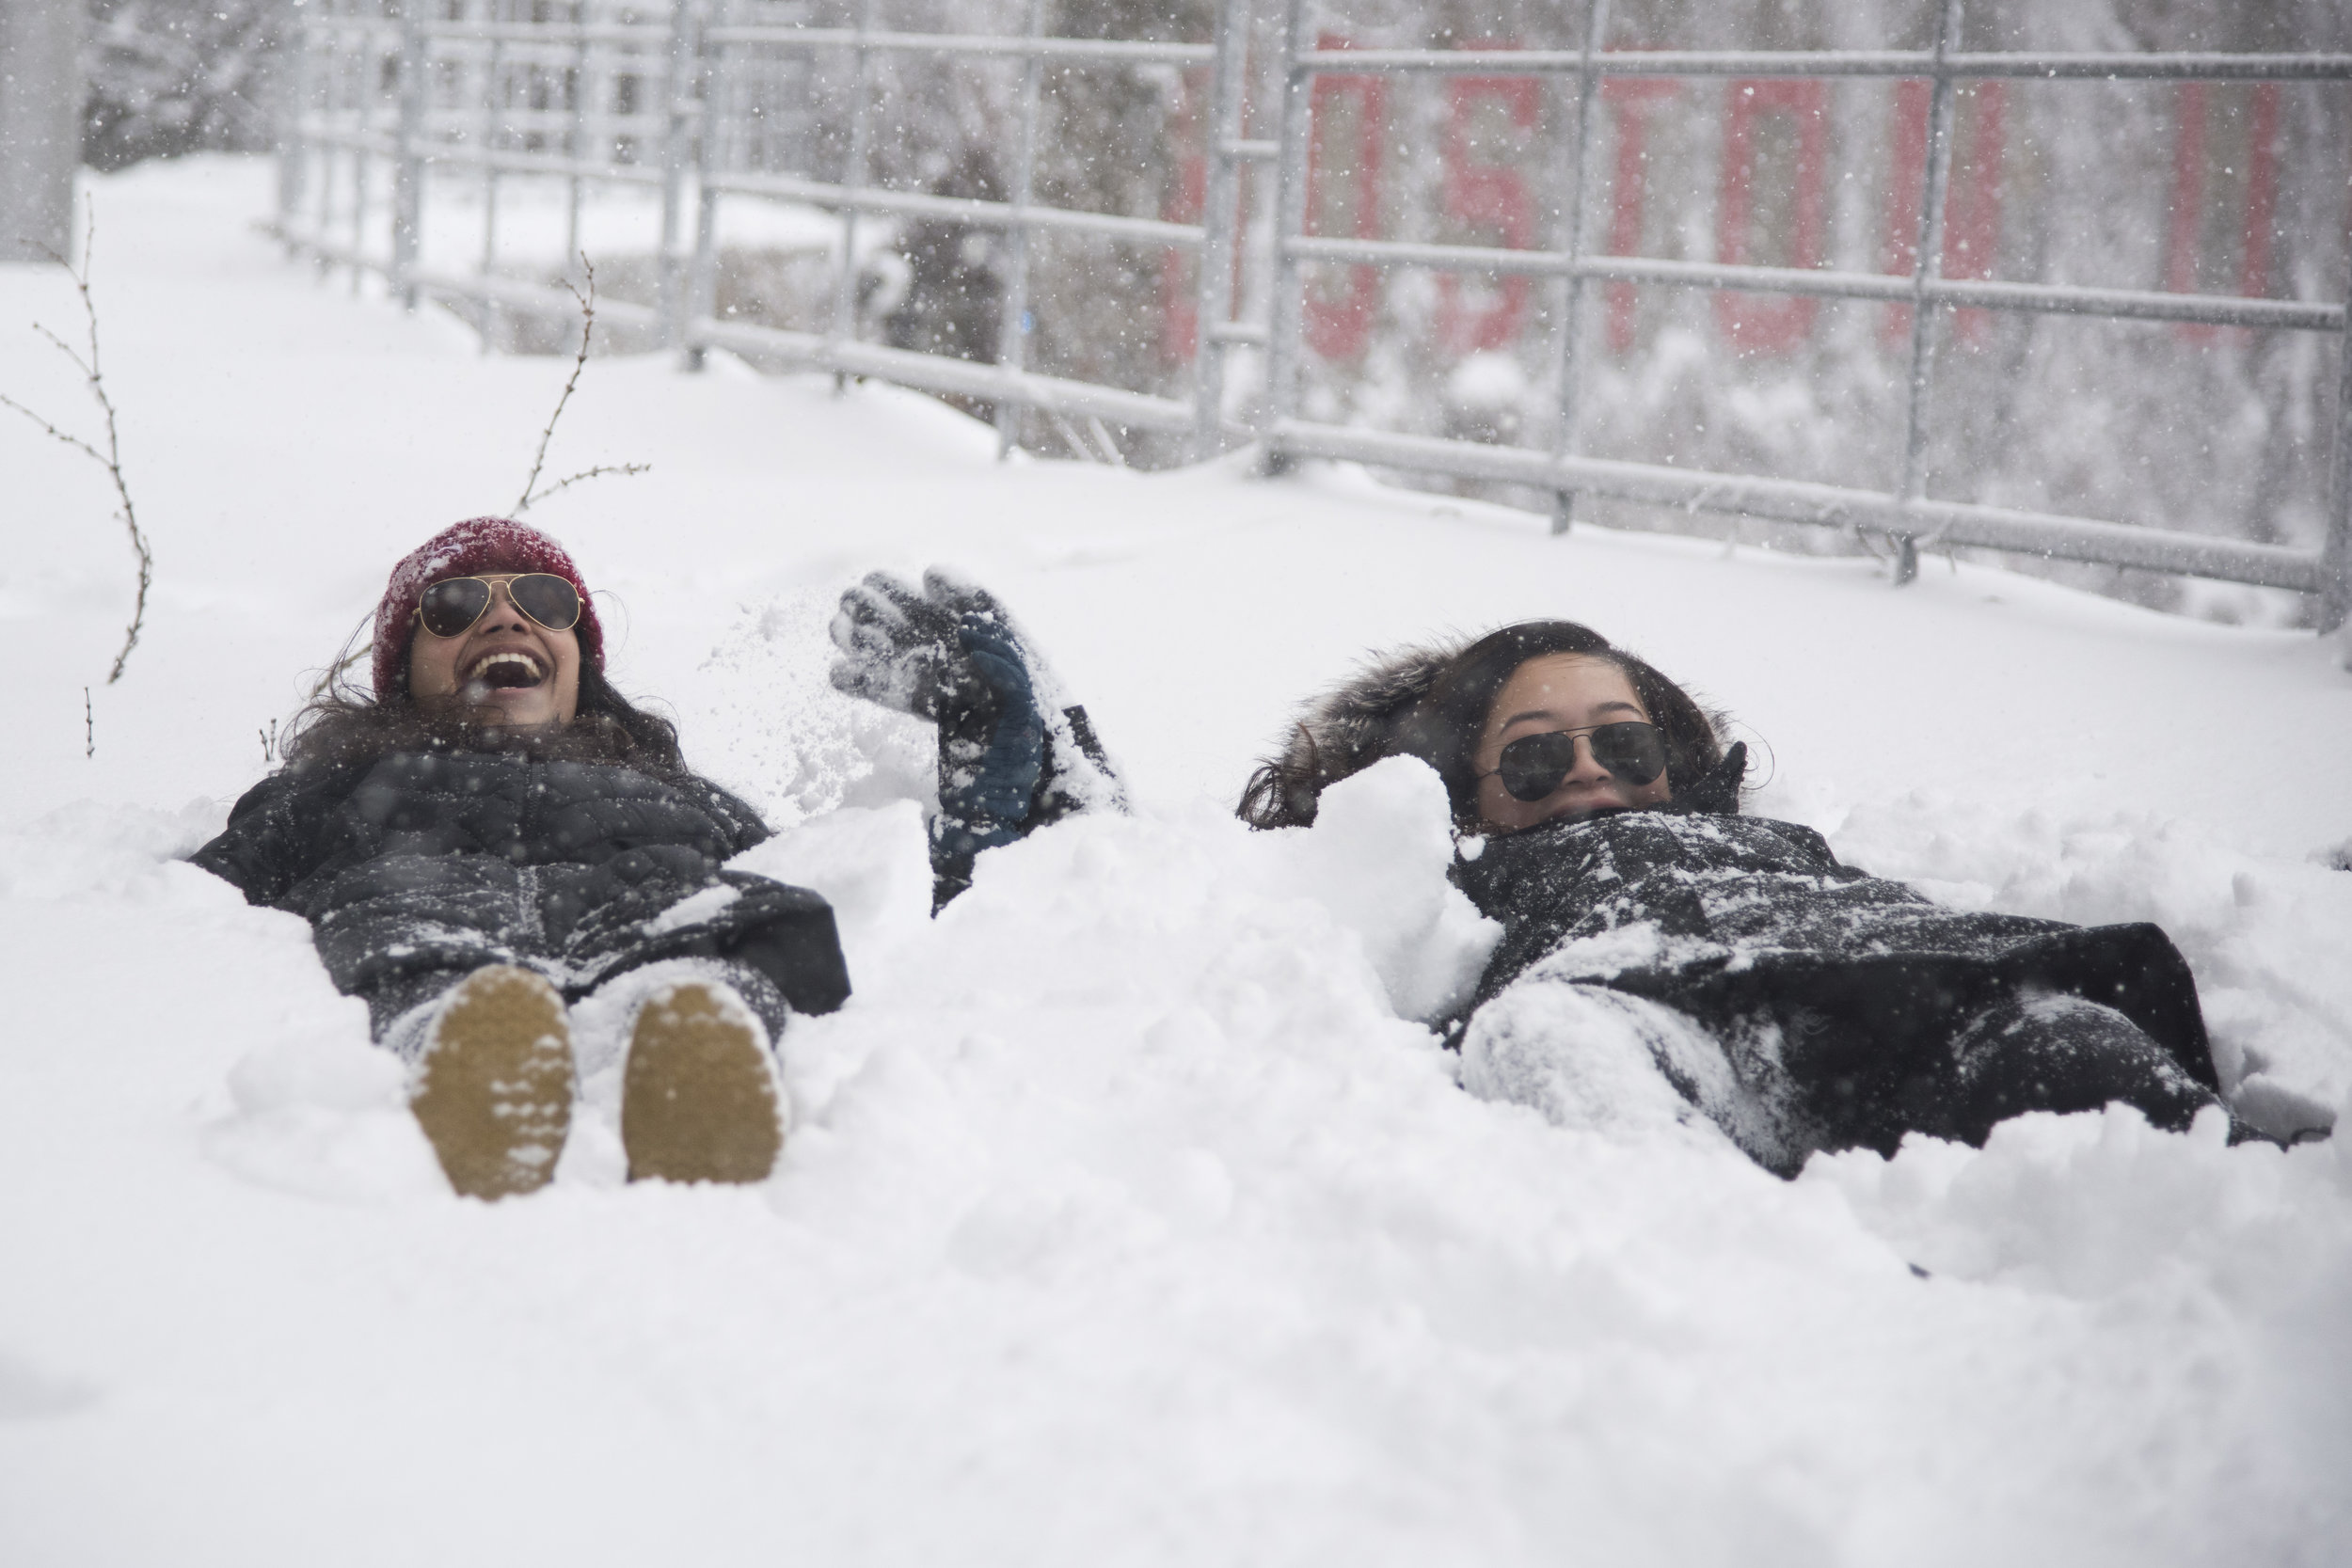 Sachi Mehrota and Tiffany Tong, both freshmen at Boston University, lay in the snow in BU's west campus during New England's third nor'easter in three weeks. The storm brought blizzard-like conditions and the cancellation of classes at BU, other local colleges, and Boston Public Schools.